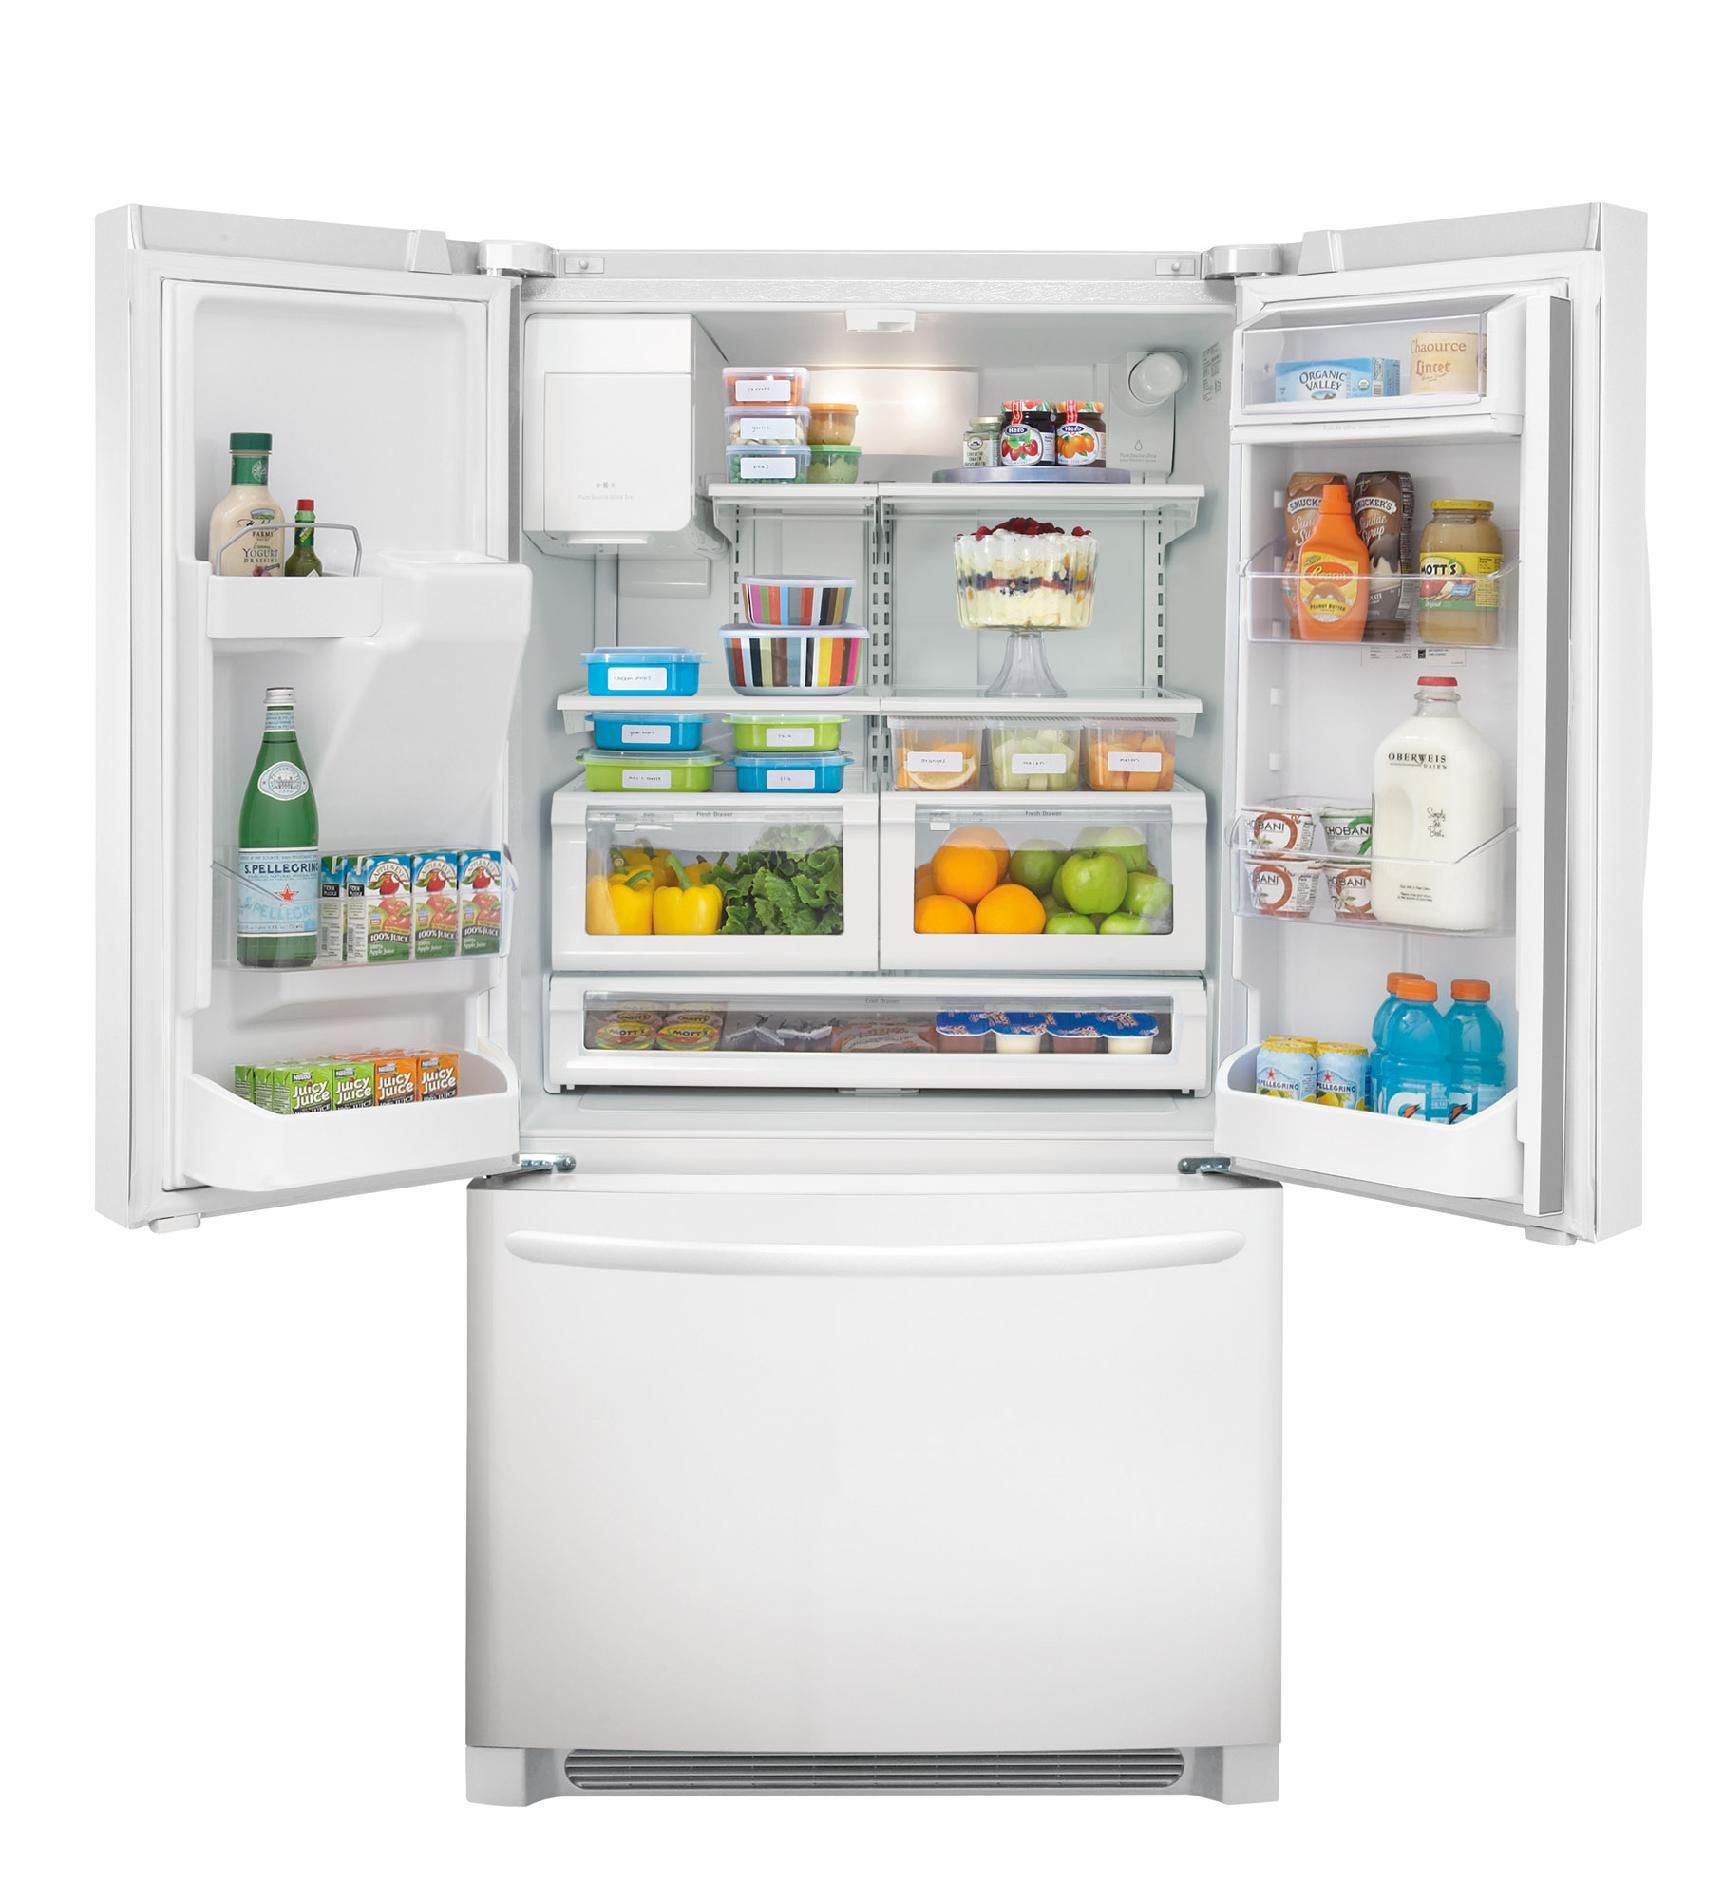 Frigidaire 22.6 cu. ft. French-Door Counter-Depth Refrigerator - White